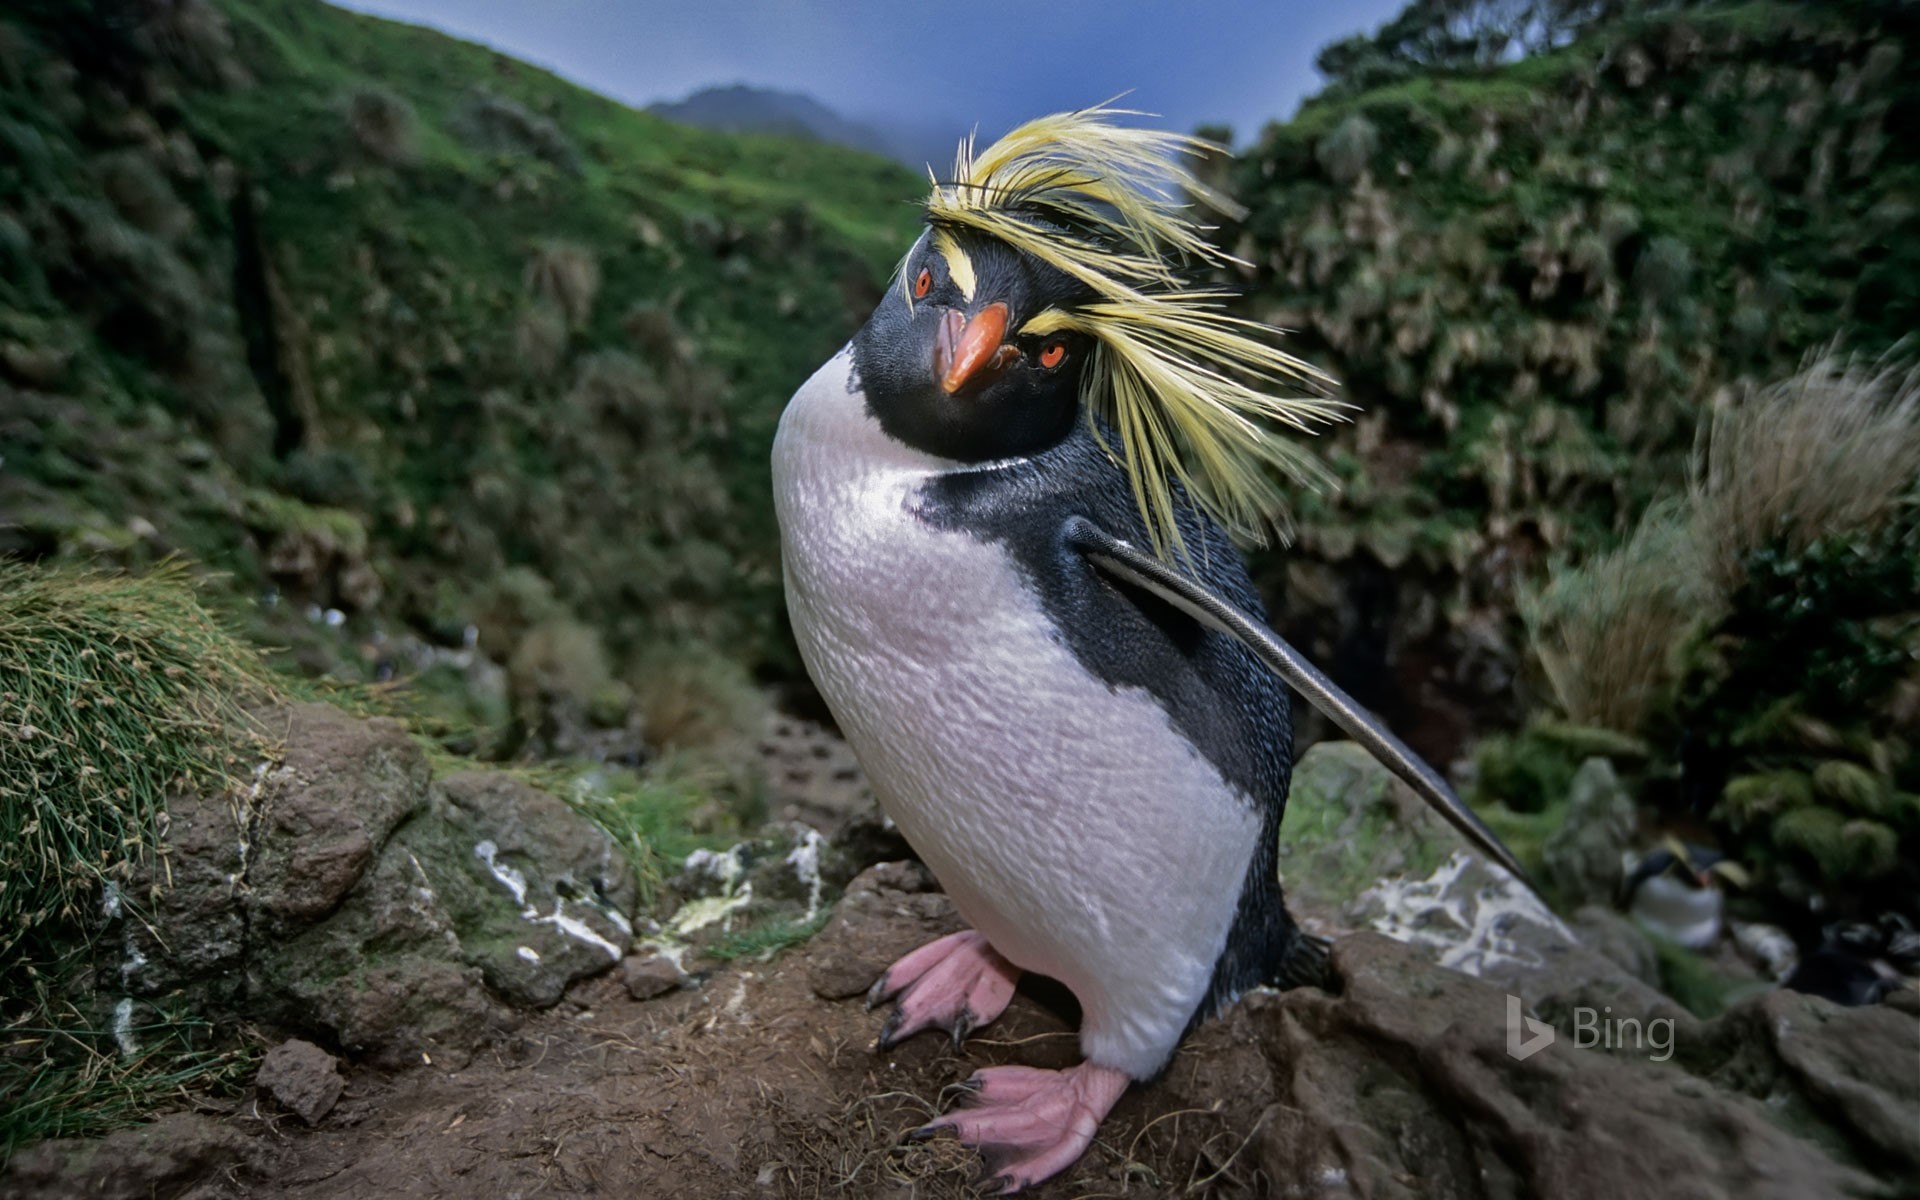 Northern rockhopper penguin on Gough Island in the South Atlantic